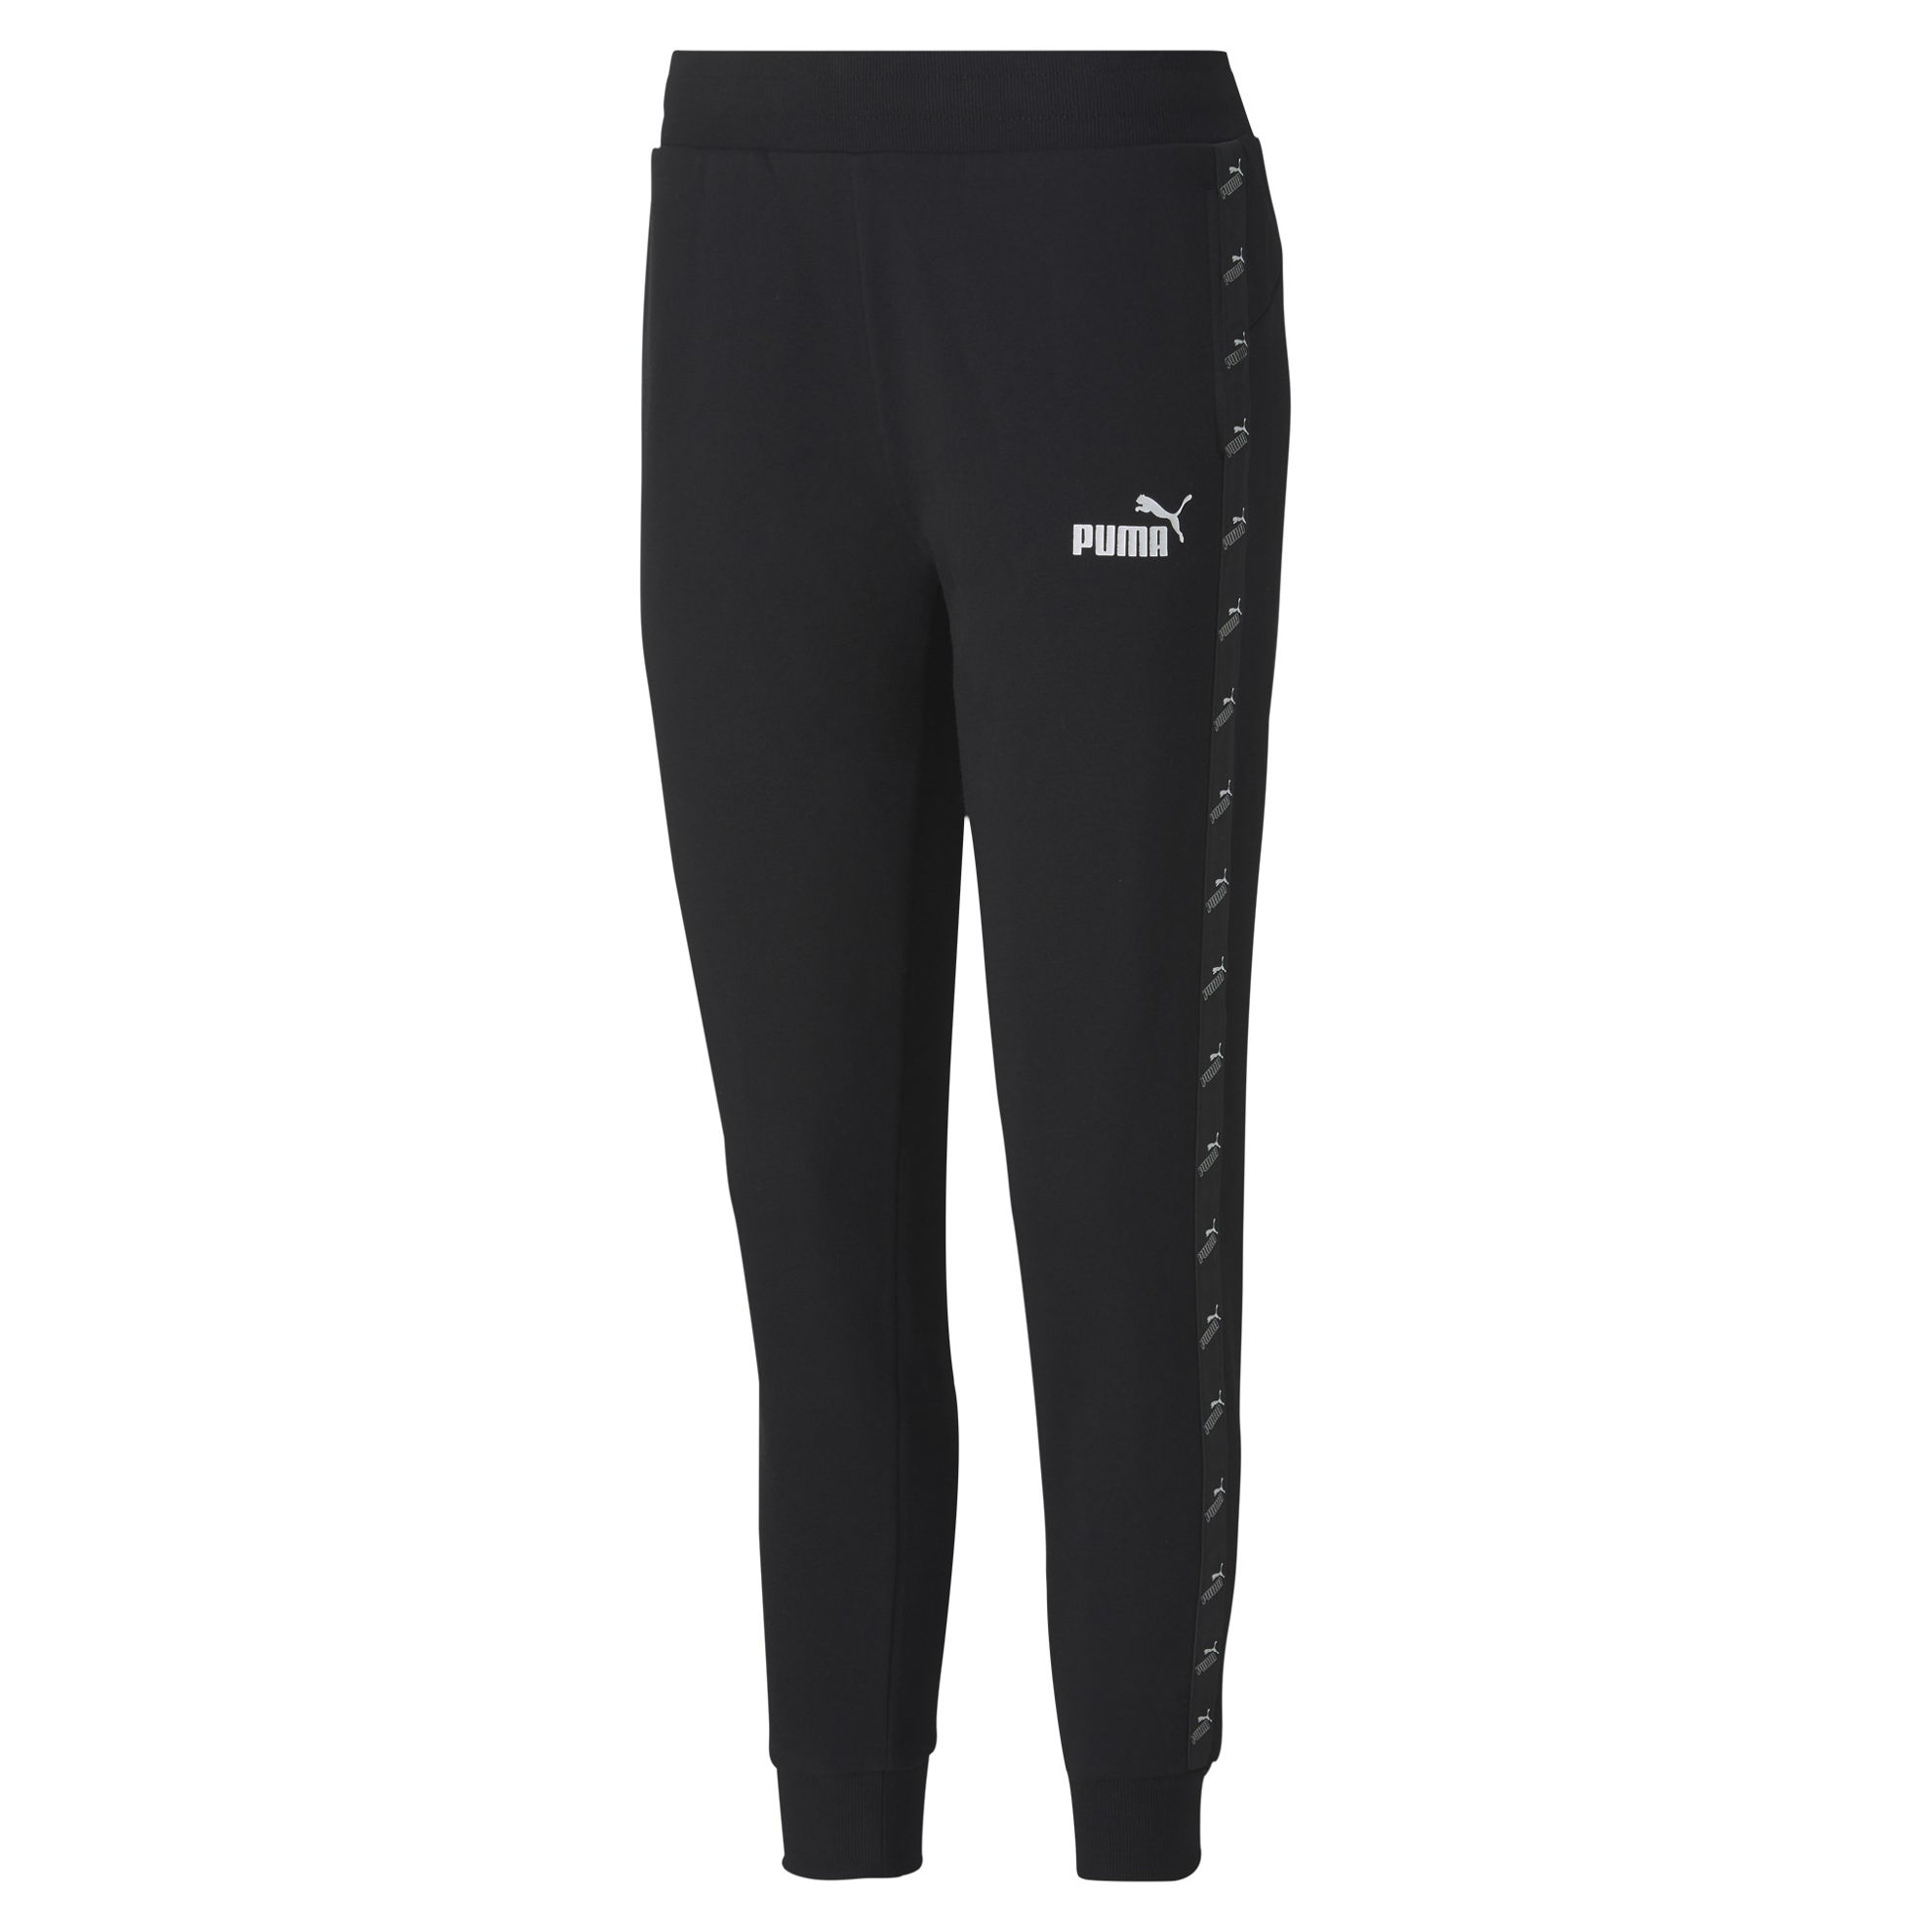 Immagine di PUMA - PANTALONE AMPLIFIED PANTS FL BLACK